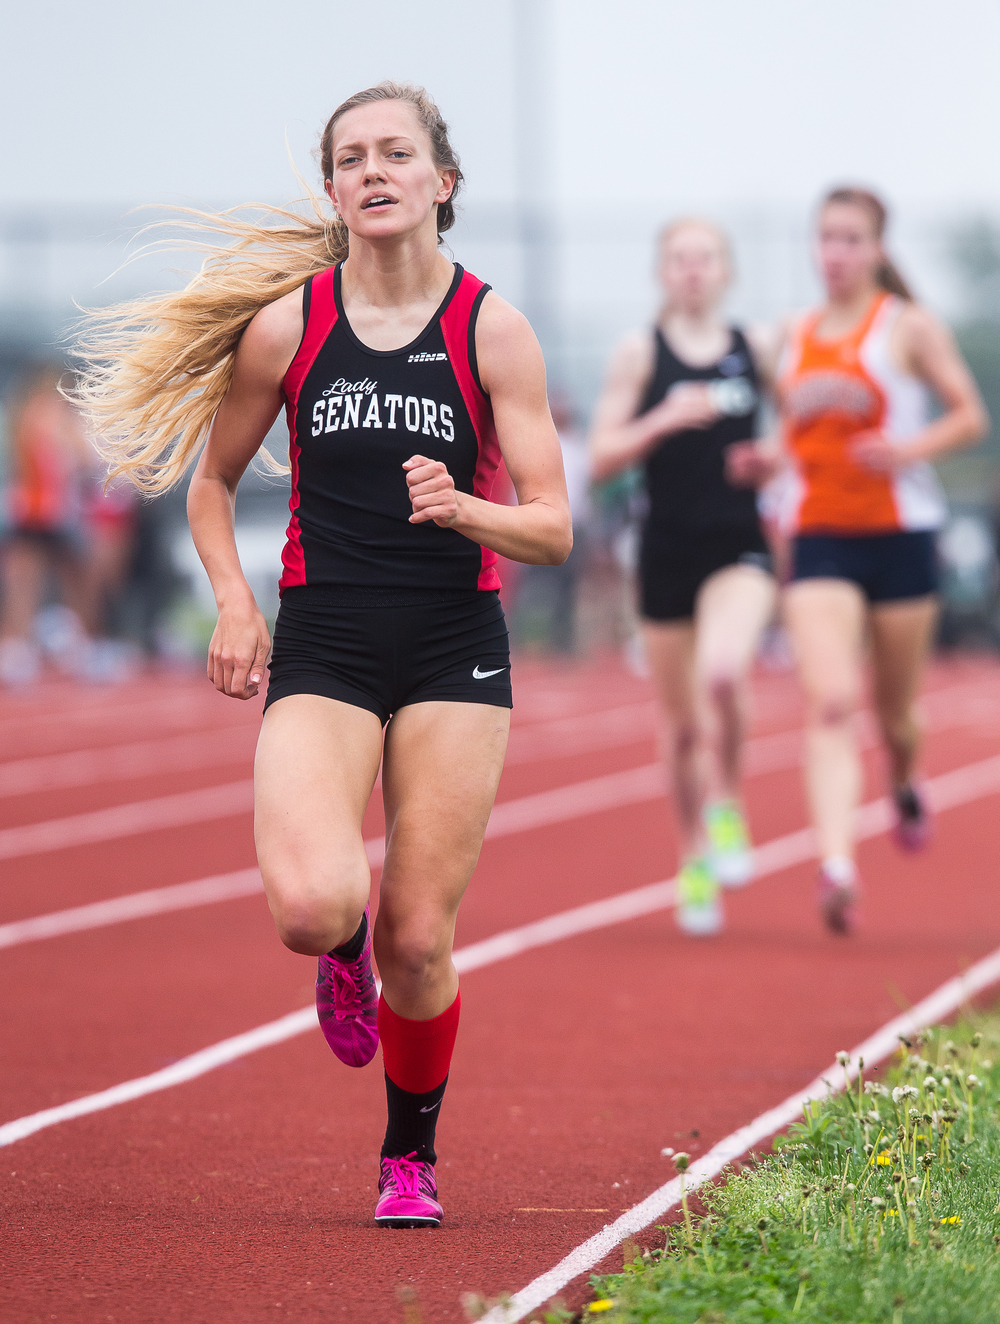 Springfield's Aly Goff heads to the finish line to win the 1600m Run with a time of 5:16.07 during the Girls Central State Eight Conference Track Meet at Glenwood High School, Saturday, May 9, 2015, in Chatham, Ill. Justin L. Fowler/The State Journal-Register